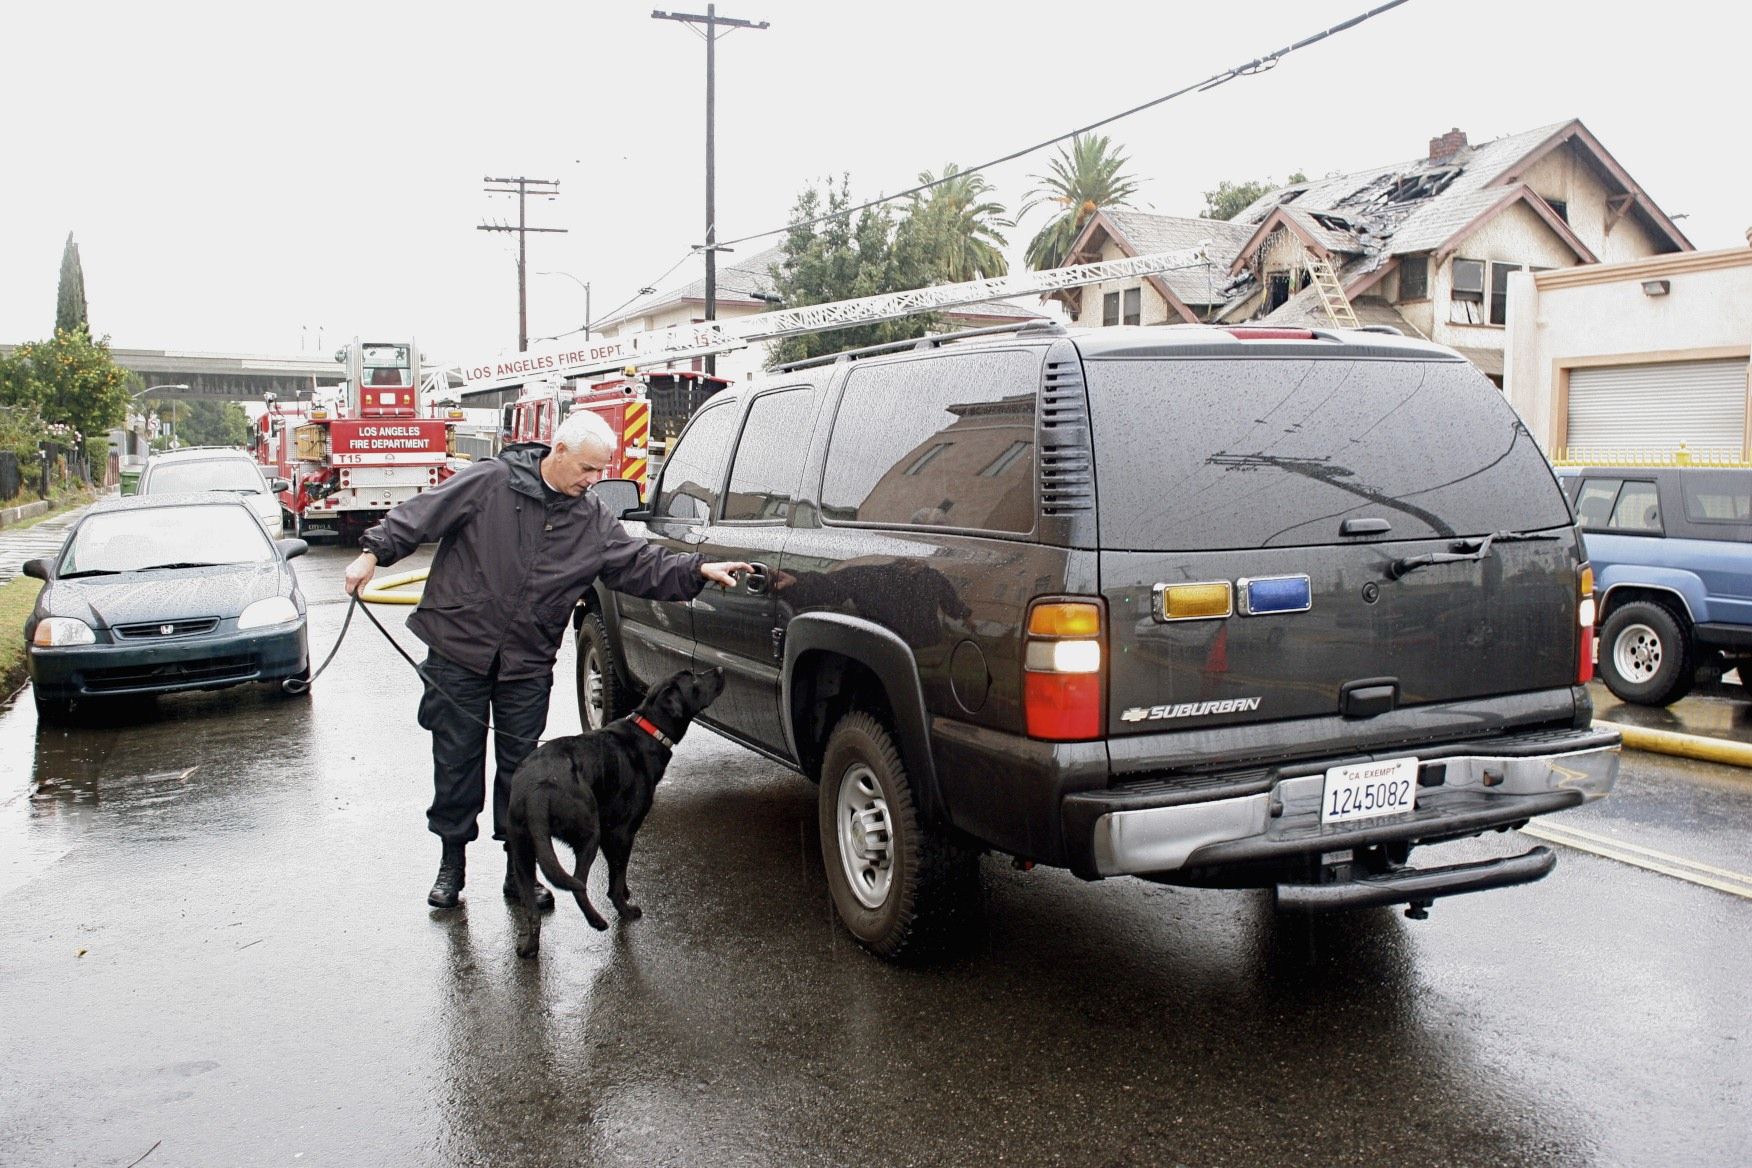 Major standing in the rain next to a black fire department Chevy Suburban, patiently waiting as his handler reaches for the rear driver-side door handle. LAFD fire truck and engine can be seen in the background in front of a 2-story home with fire damage.